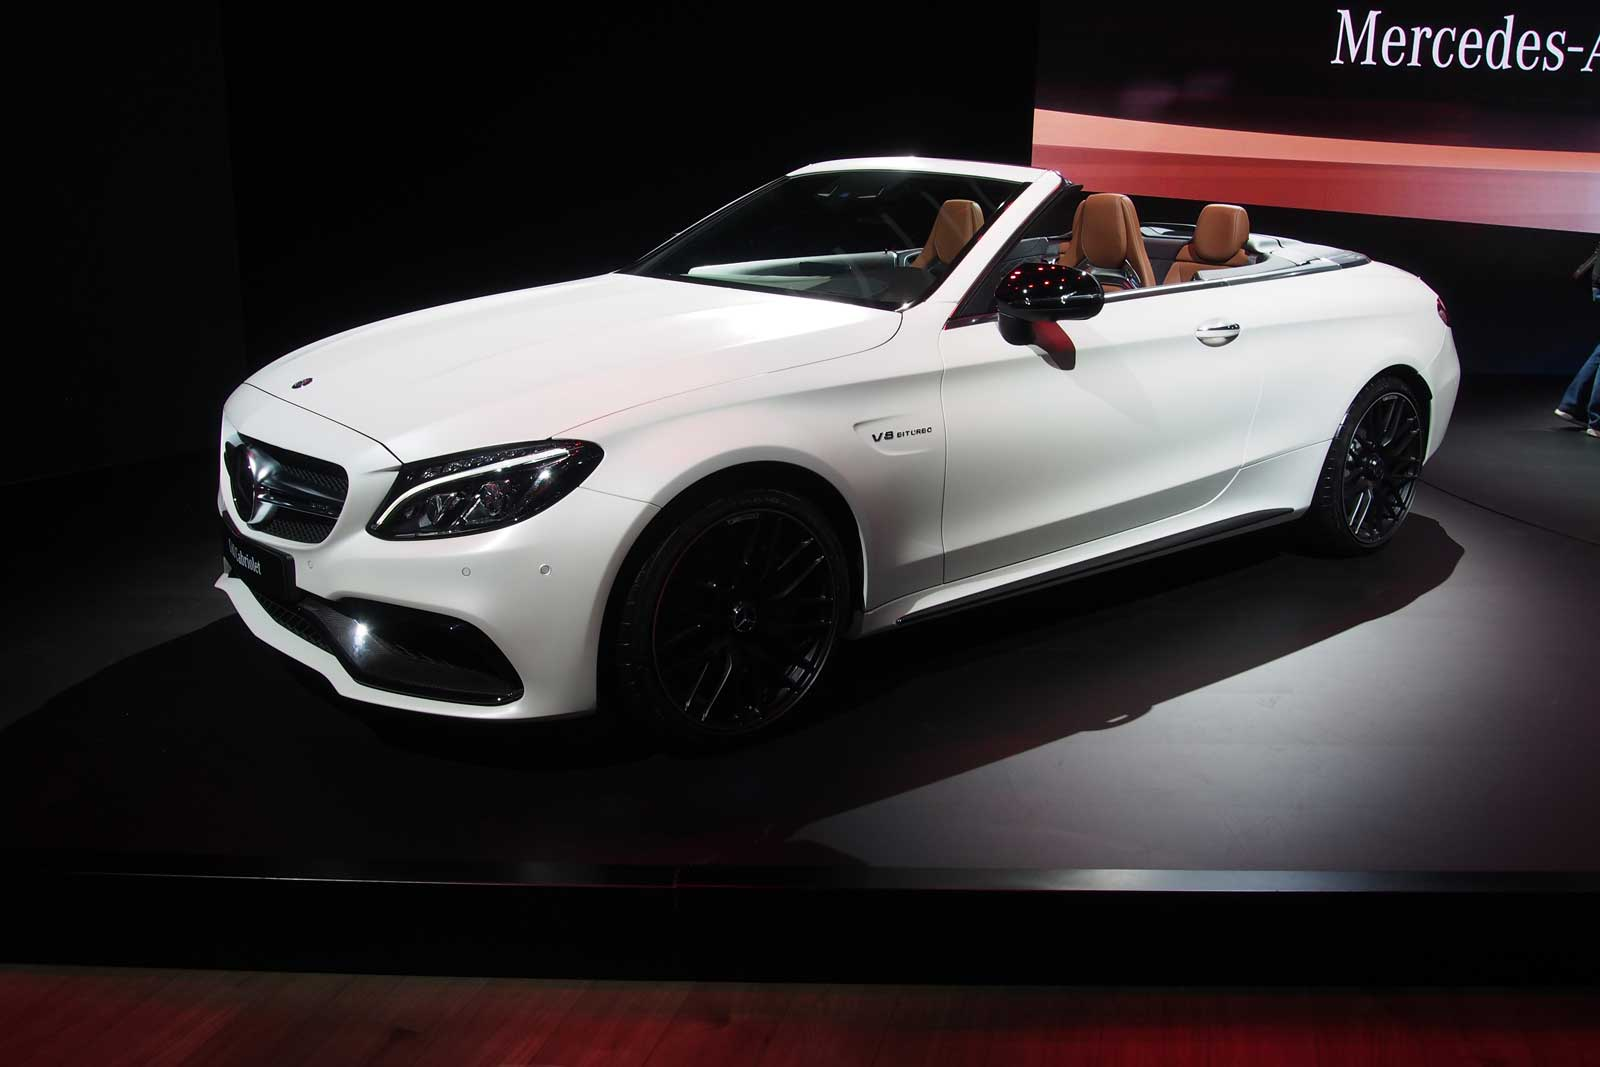 2017 Mercedes Amg C63 Cabriolet Debuts With Twin Turbo V8